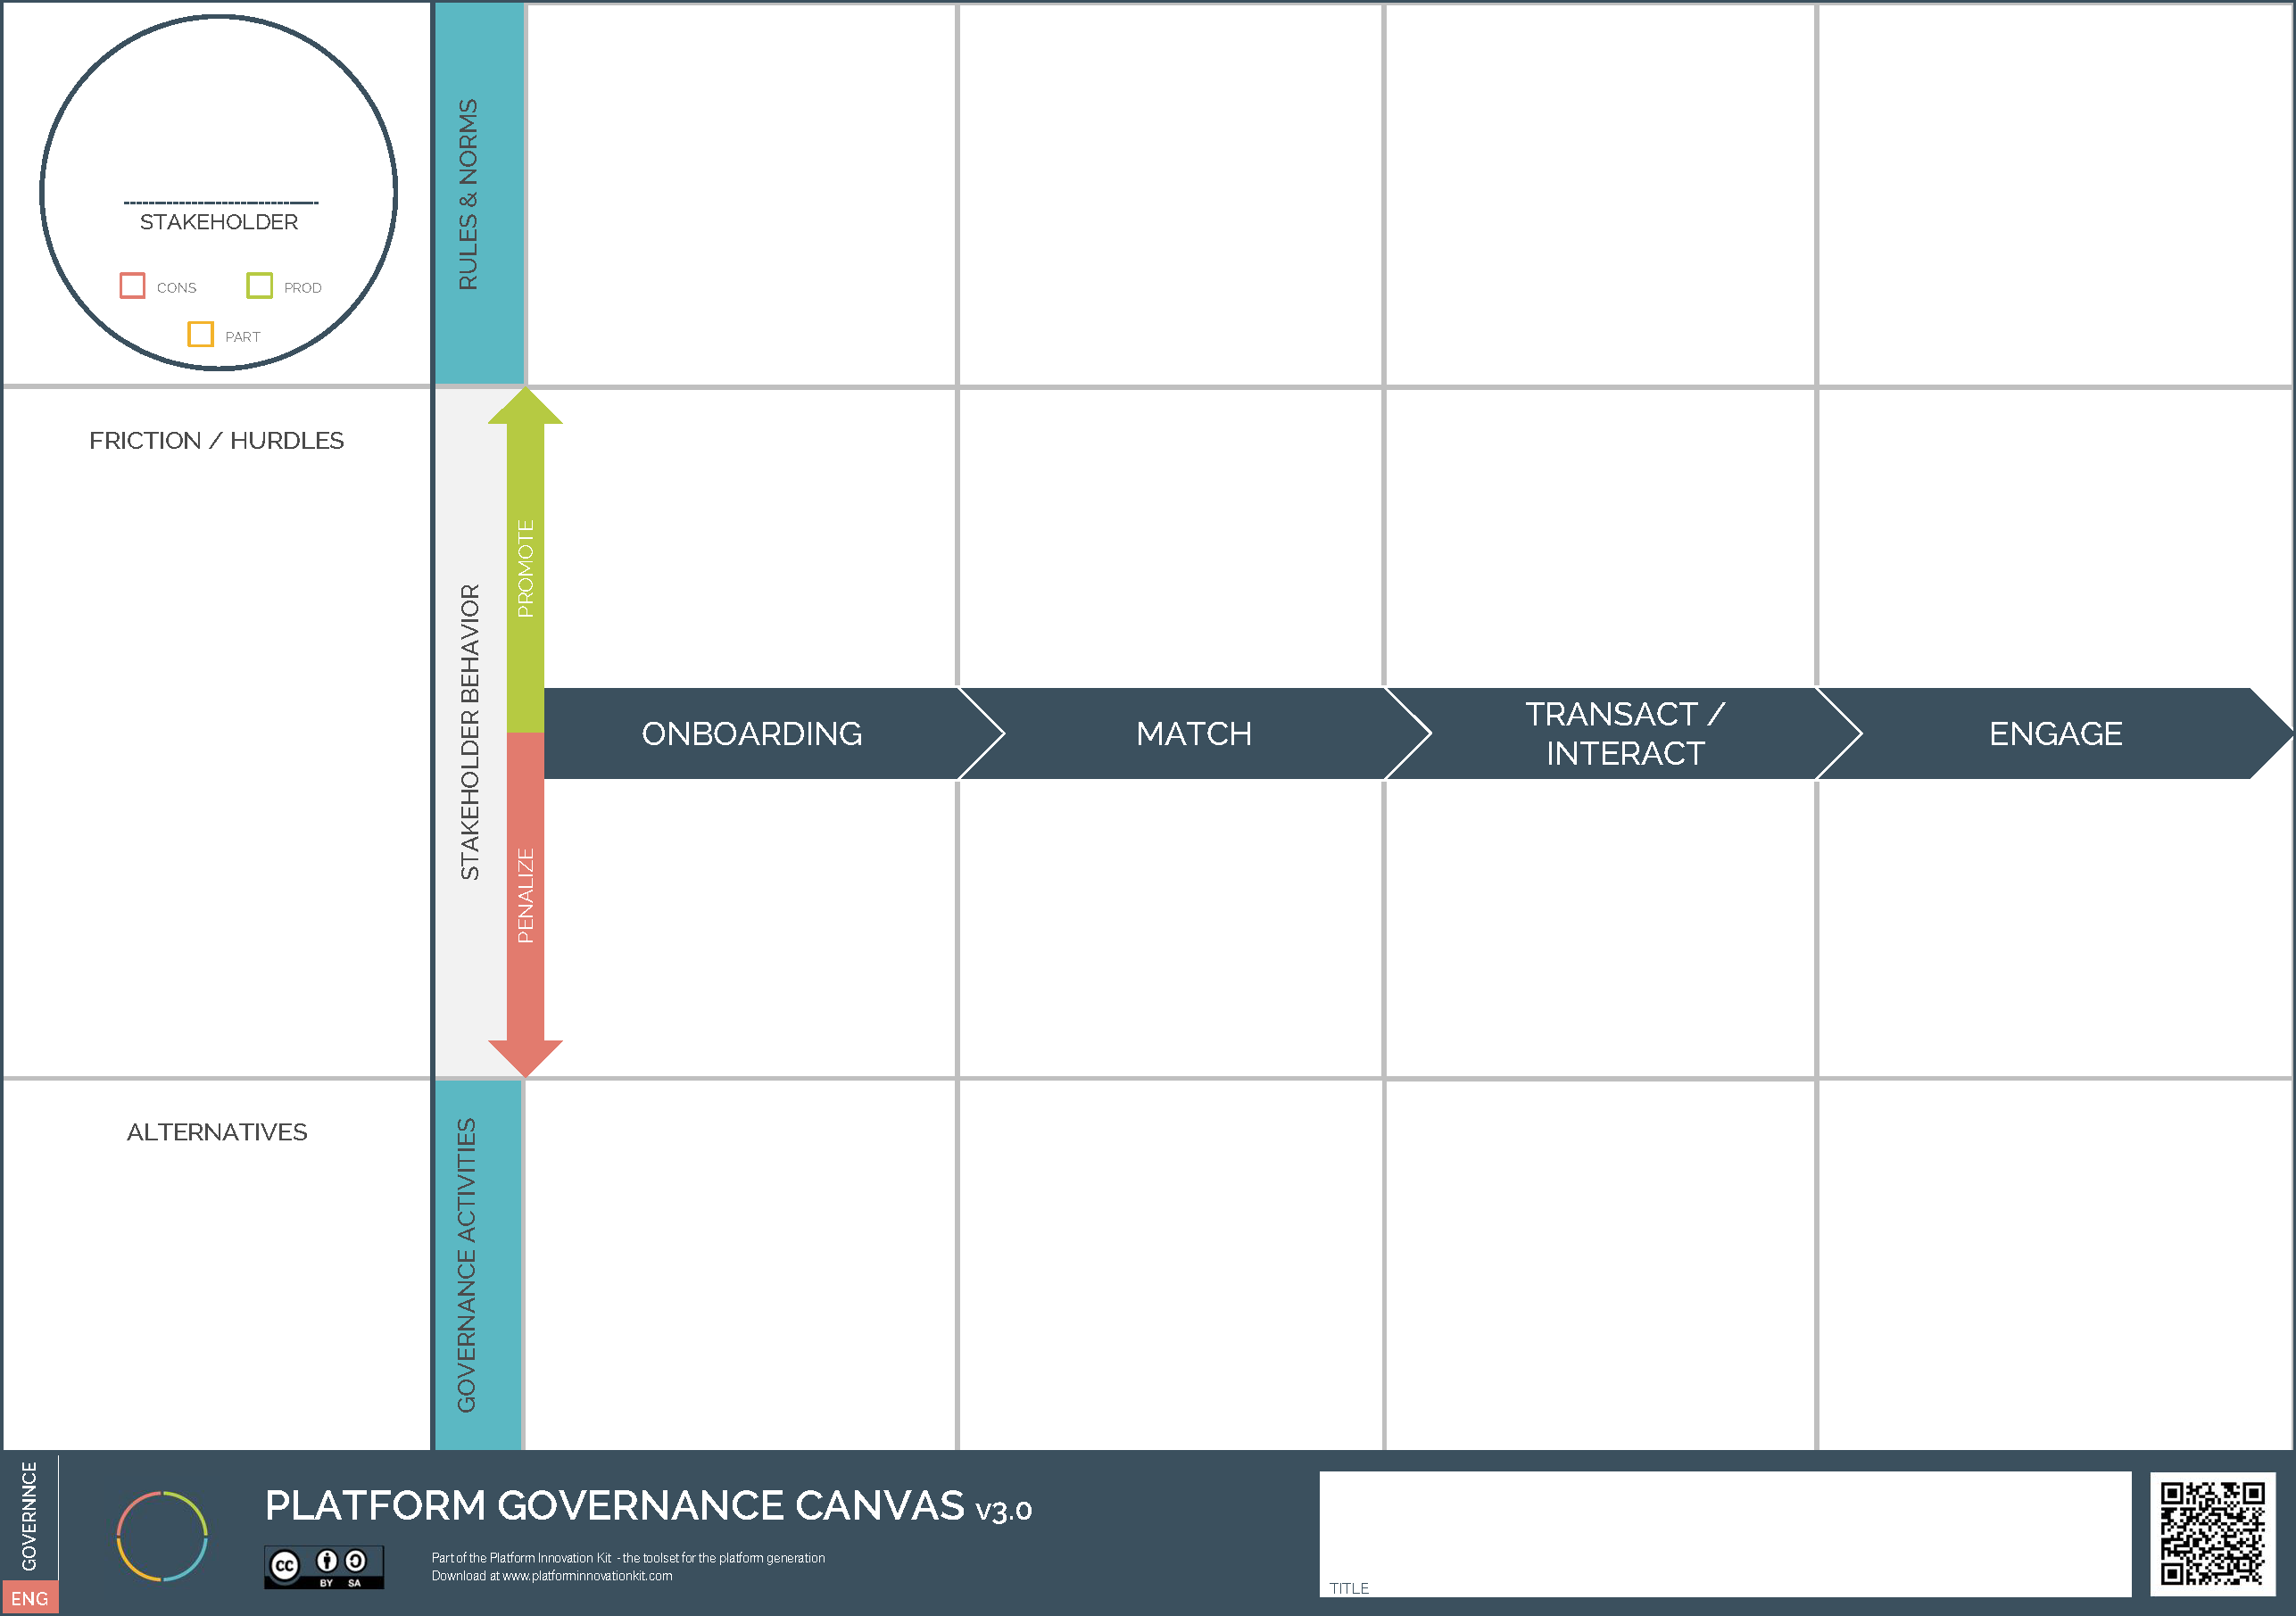 Platform Governance Canvas